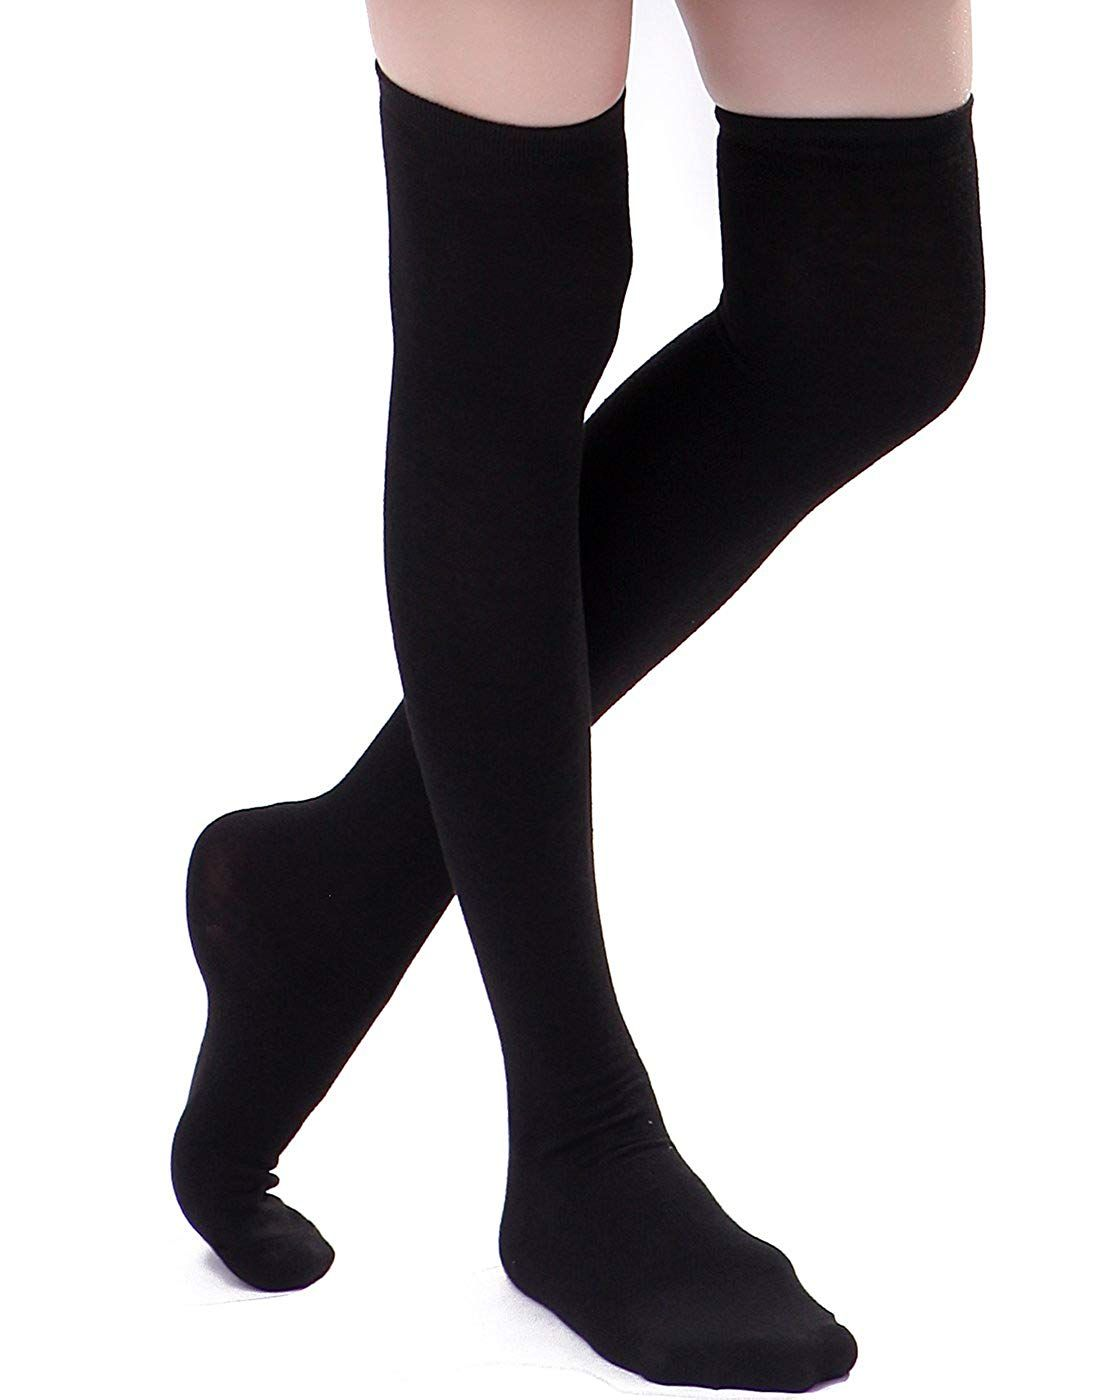 bffd219cae37a HDE Women's Knee High Stockings Solid Color Opaque Cotton Spandex Fashion  Socks at Amazon Women's Clothing store: